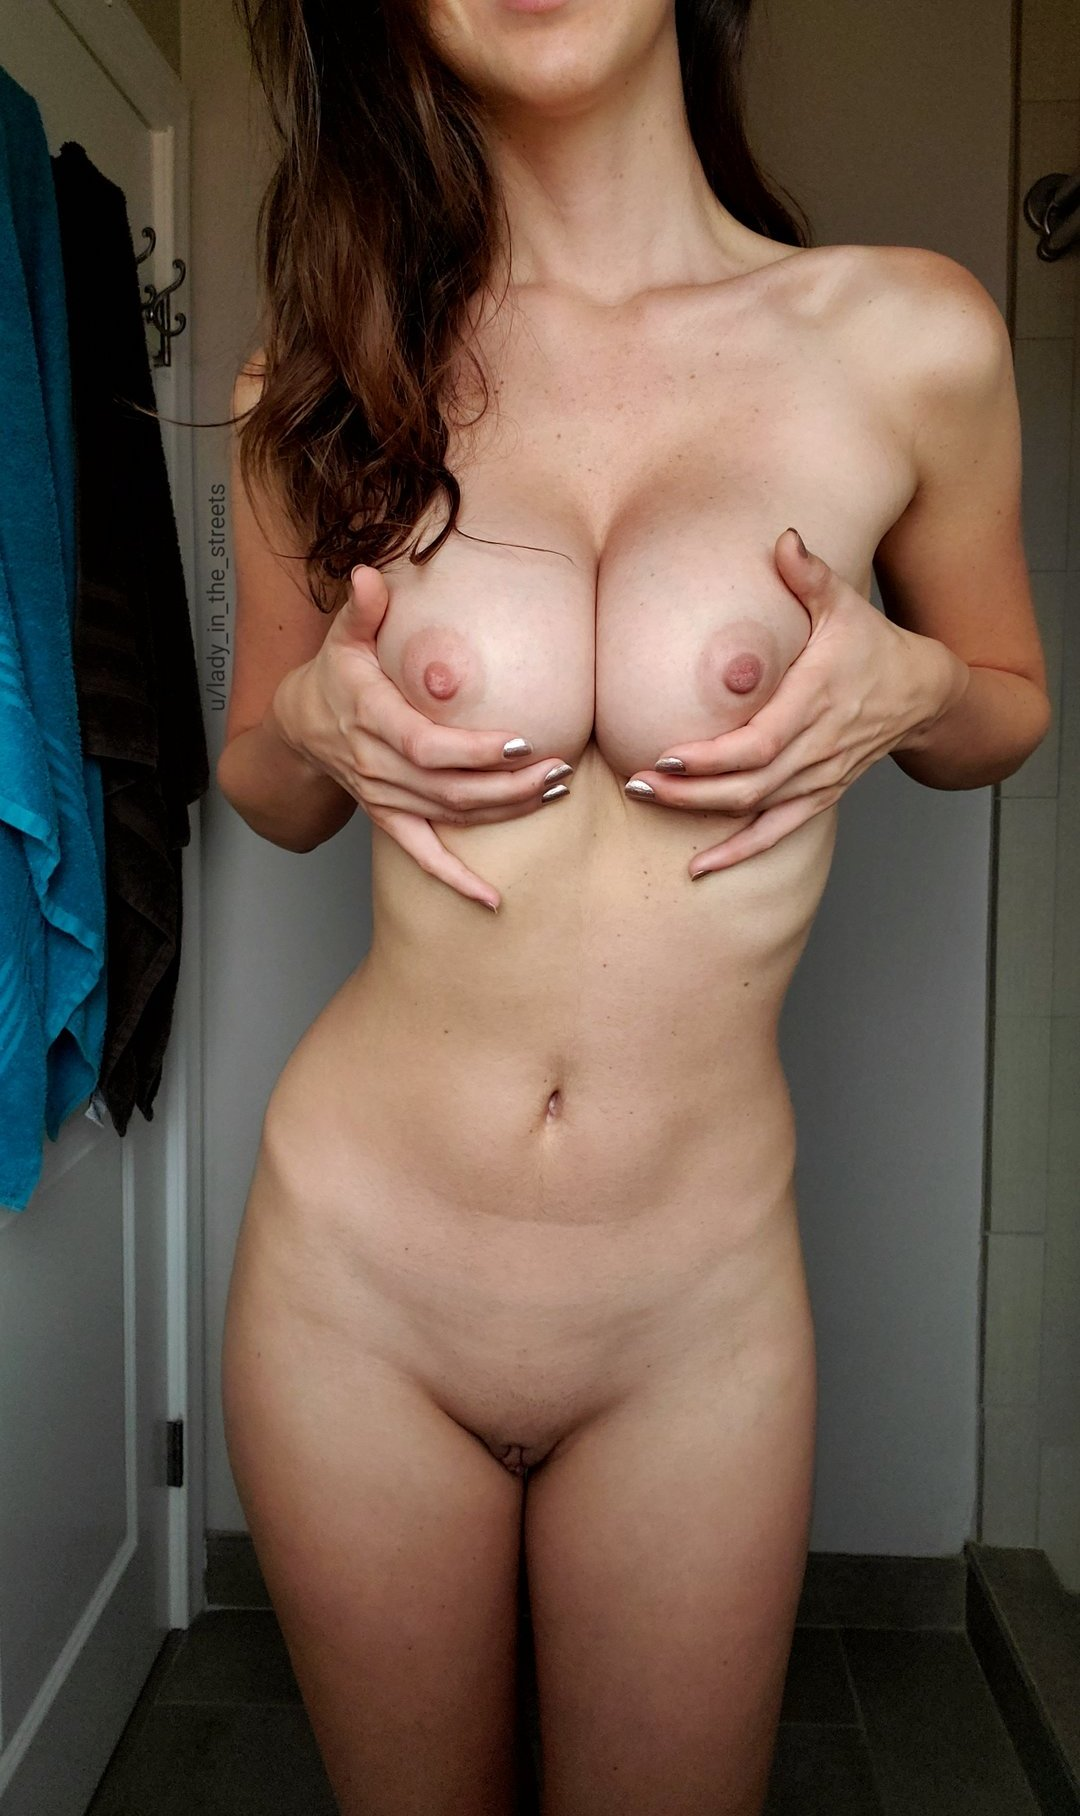 Lady In The Streets Lady In The Streets Onlyfans Nude Leaks 0011